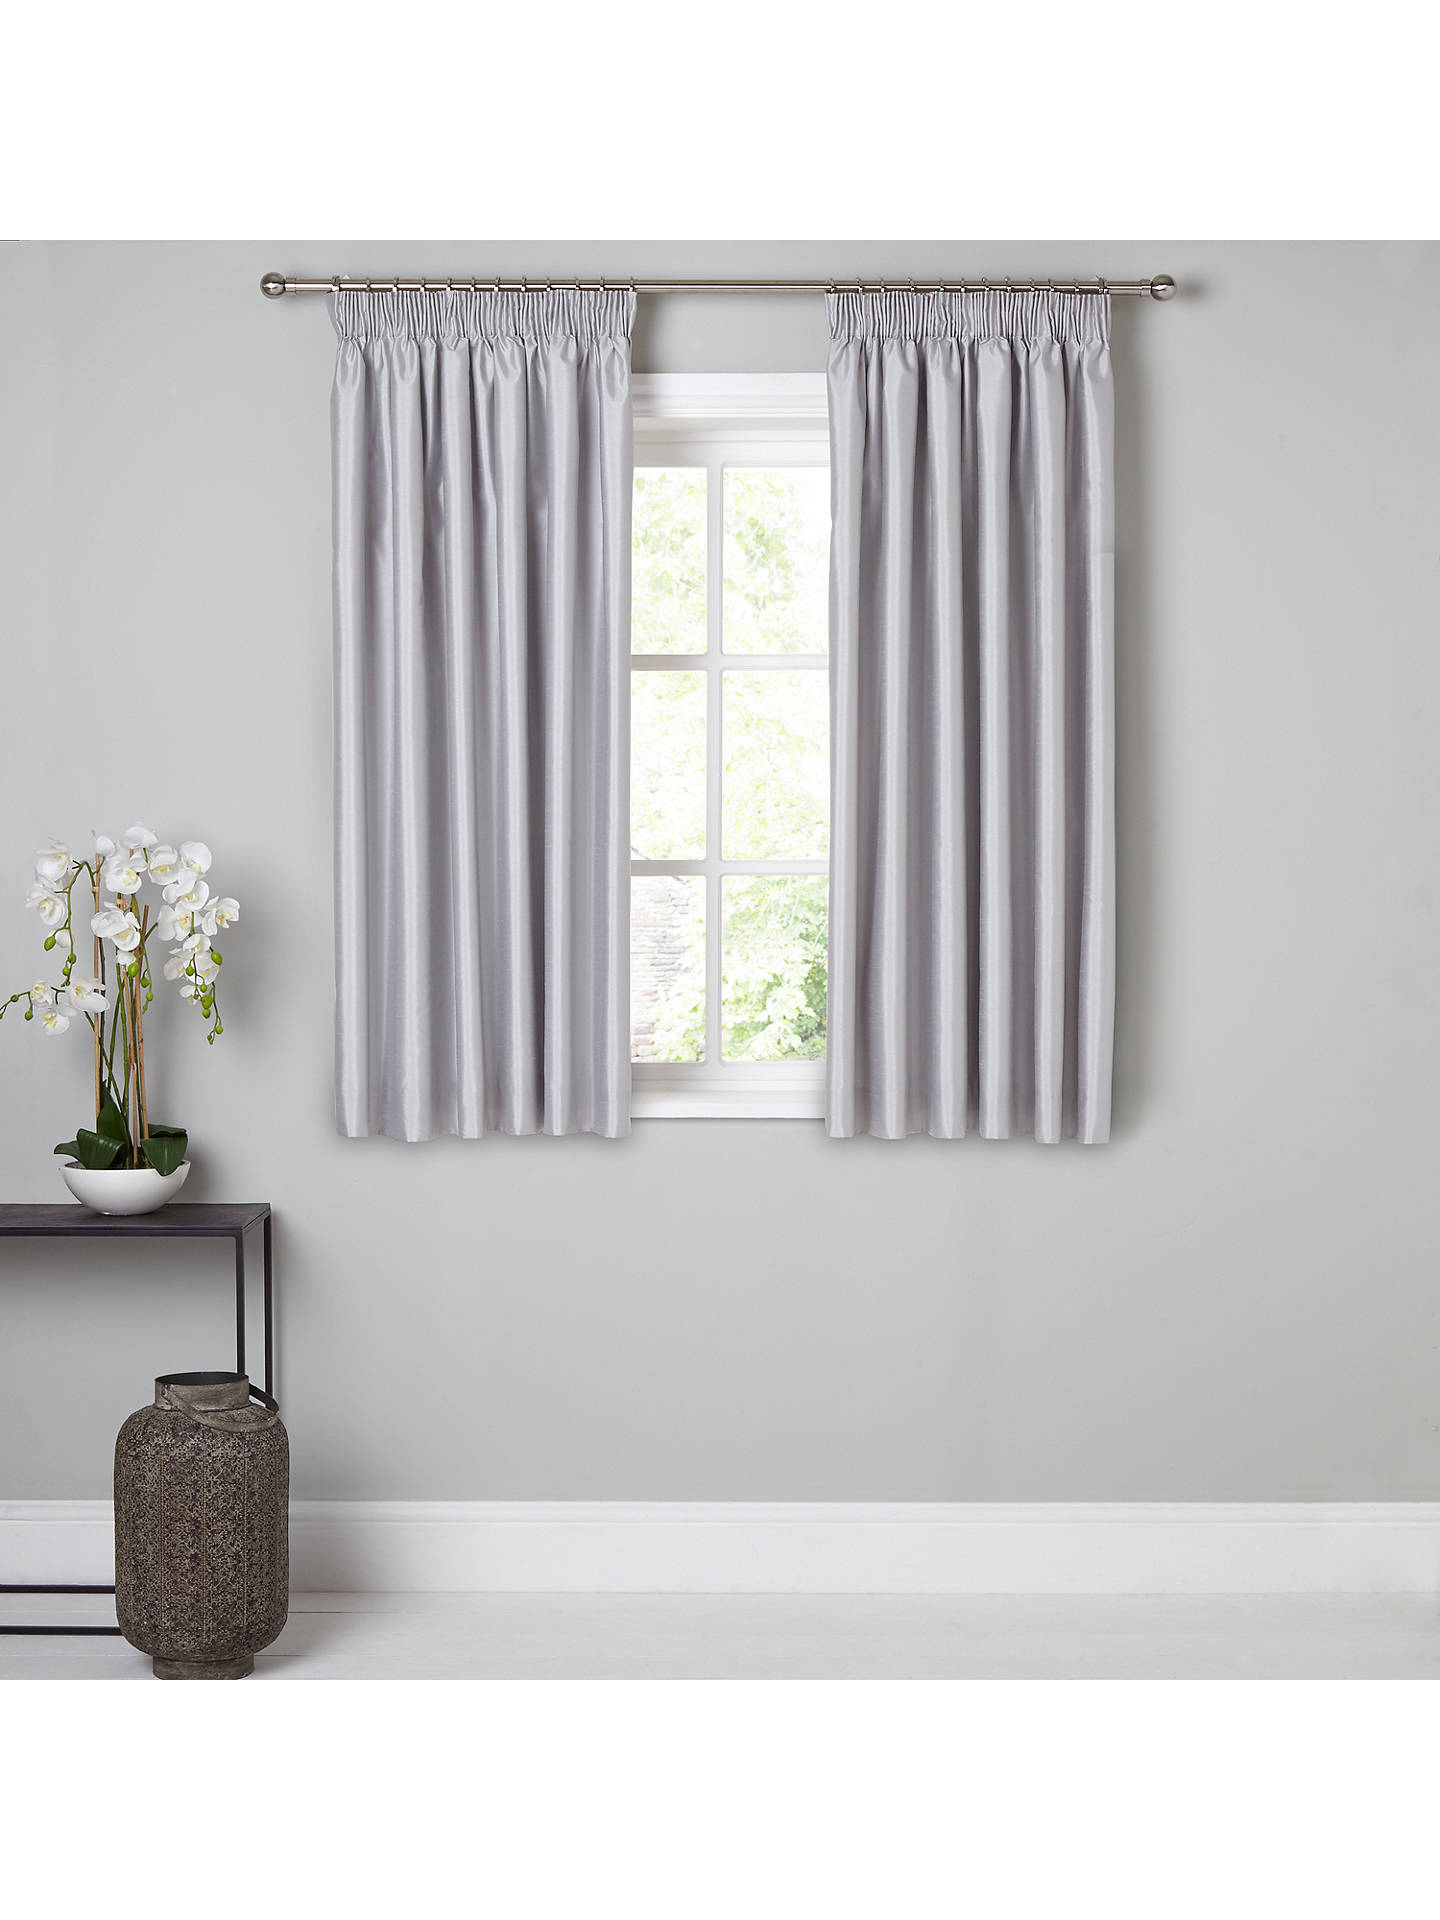 BuyJohn Lewis & Partners Faux Silk Pair Blackout Lined Pencil Pleat Curtains, Blue Grey, W167 x Drop 137cm Online at johnlewis.com